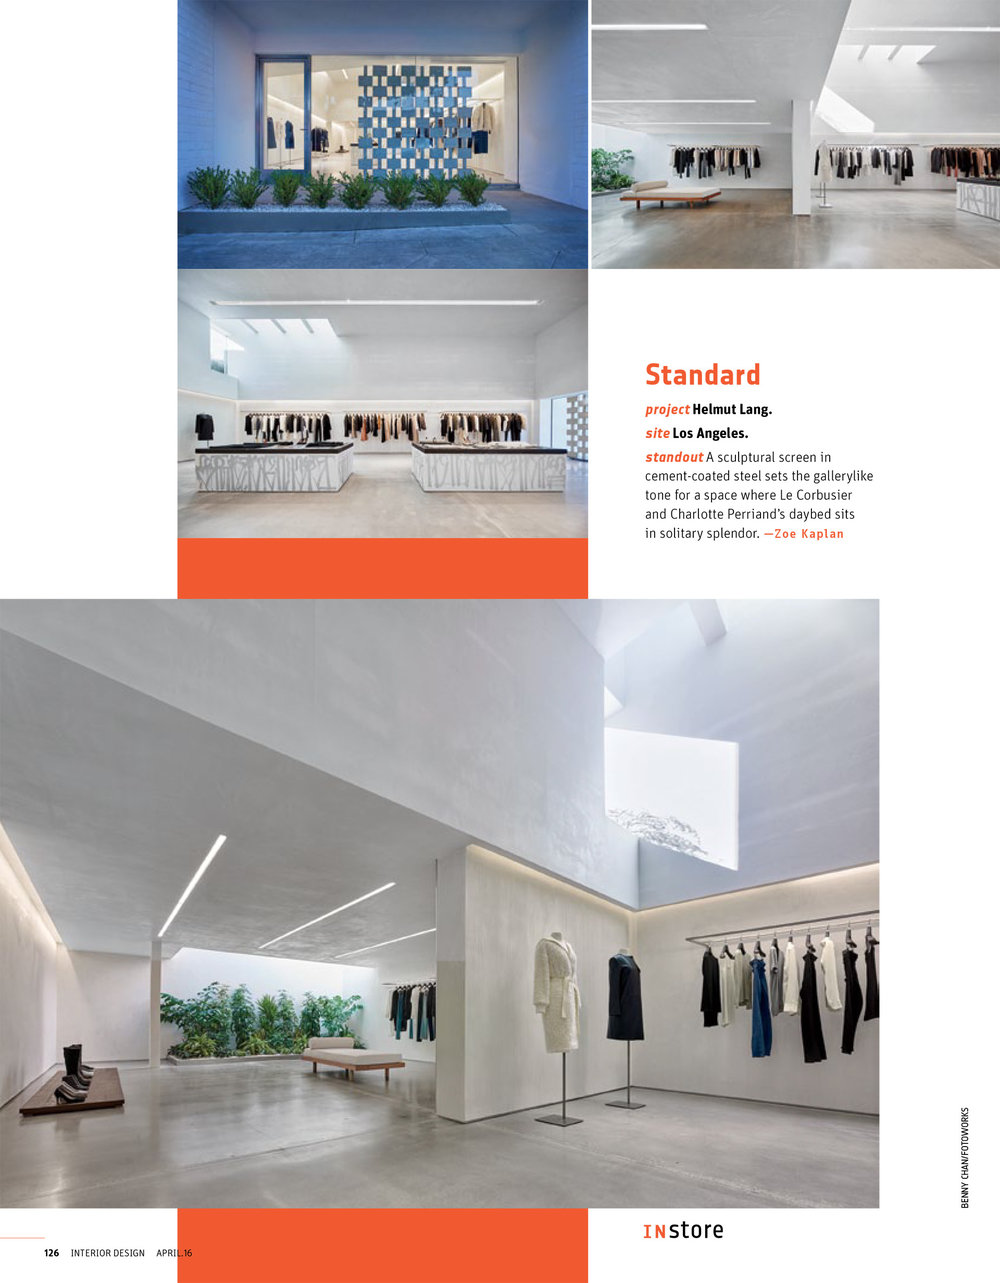 Publication: Interior Design  Architect/Design: Standard Architecture  Photographer: Benny Chan  Retoucher: Erica Lowe